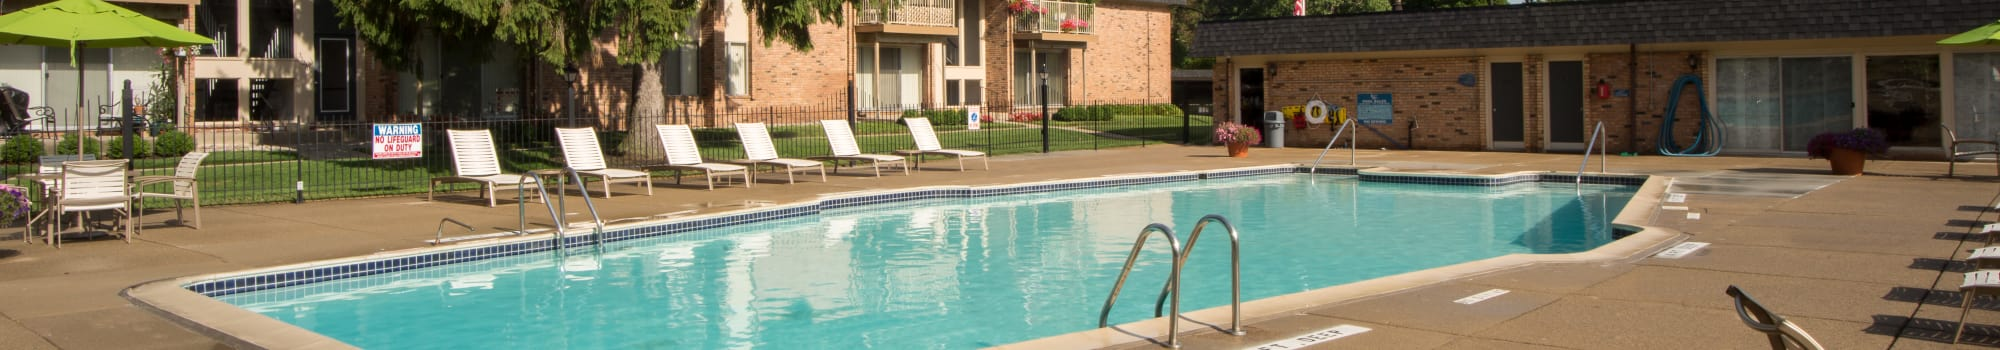 Reviews at Kensington Manor Apartments in Farmington, Michigan